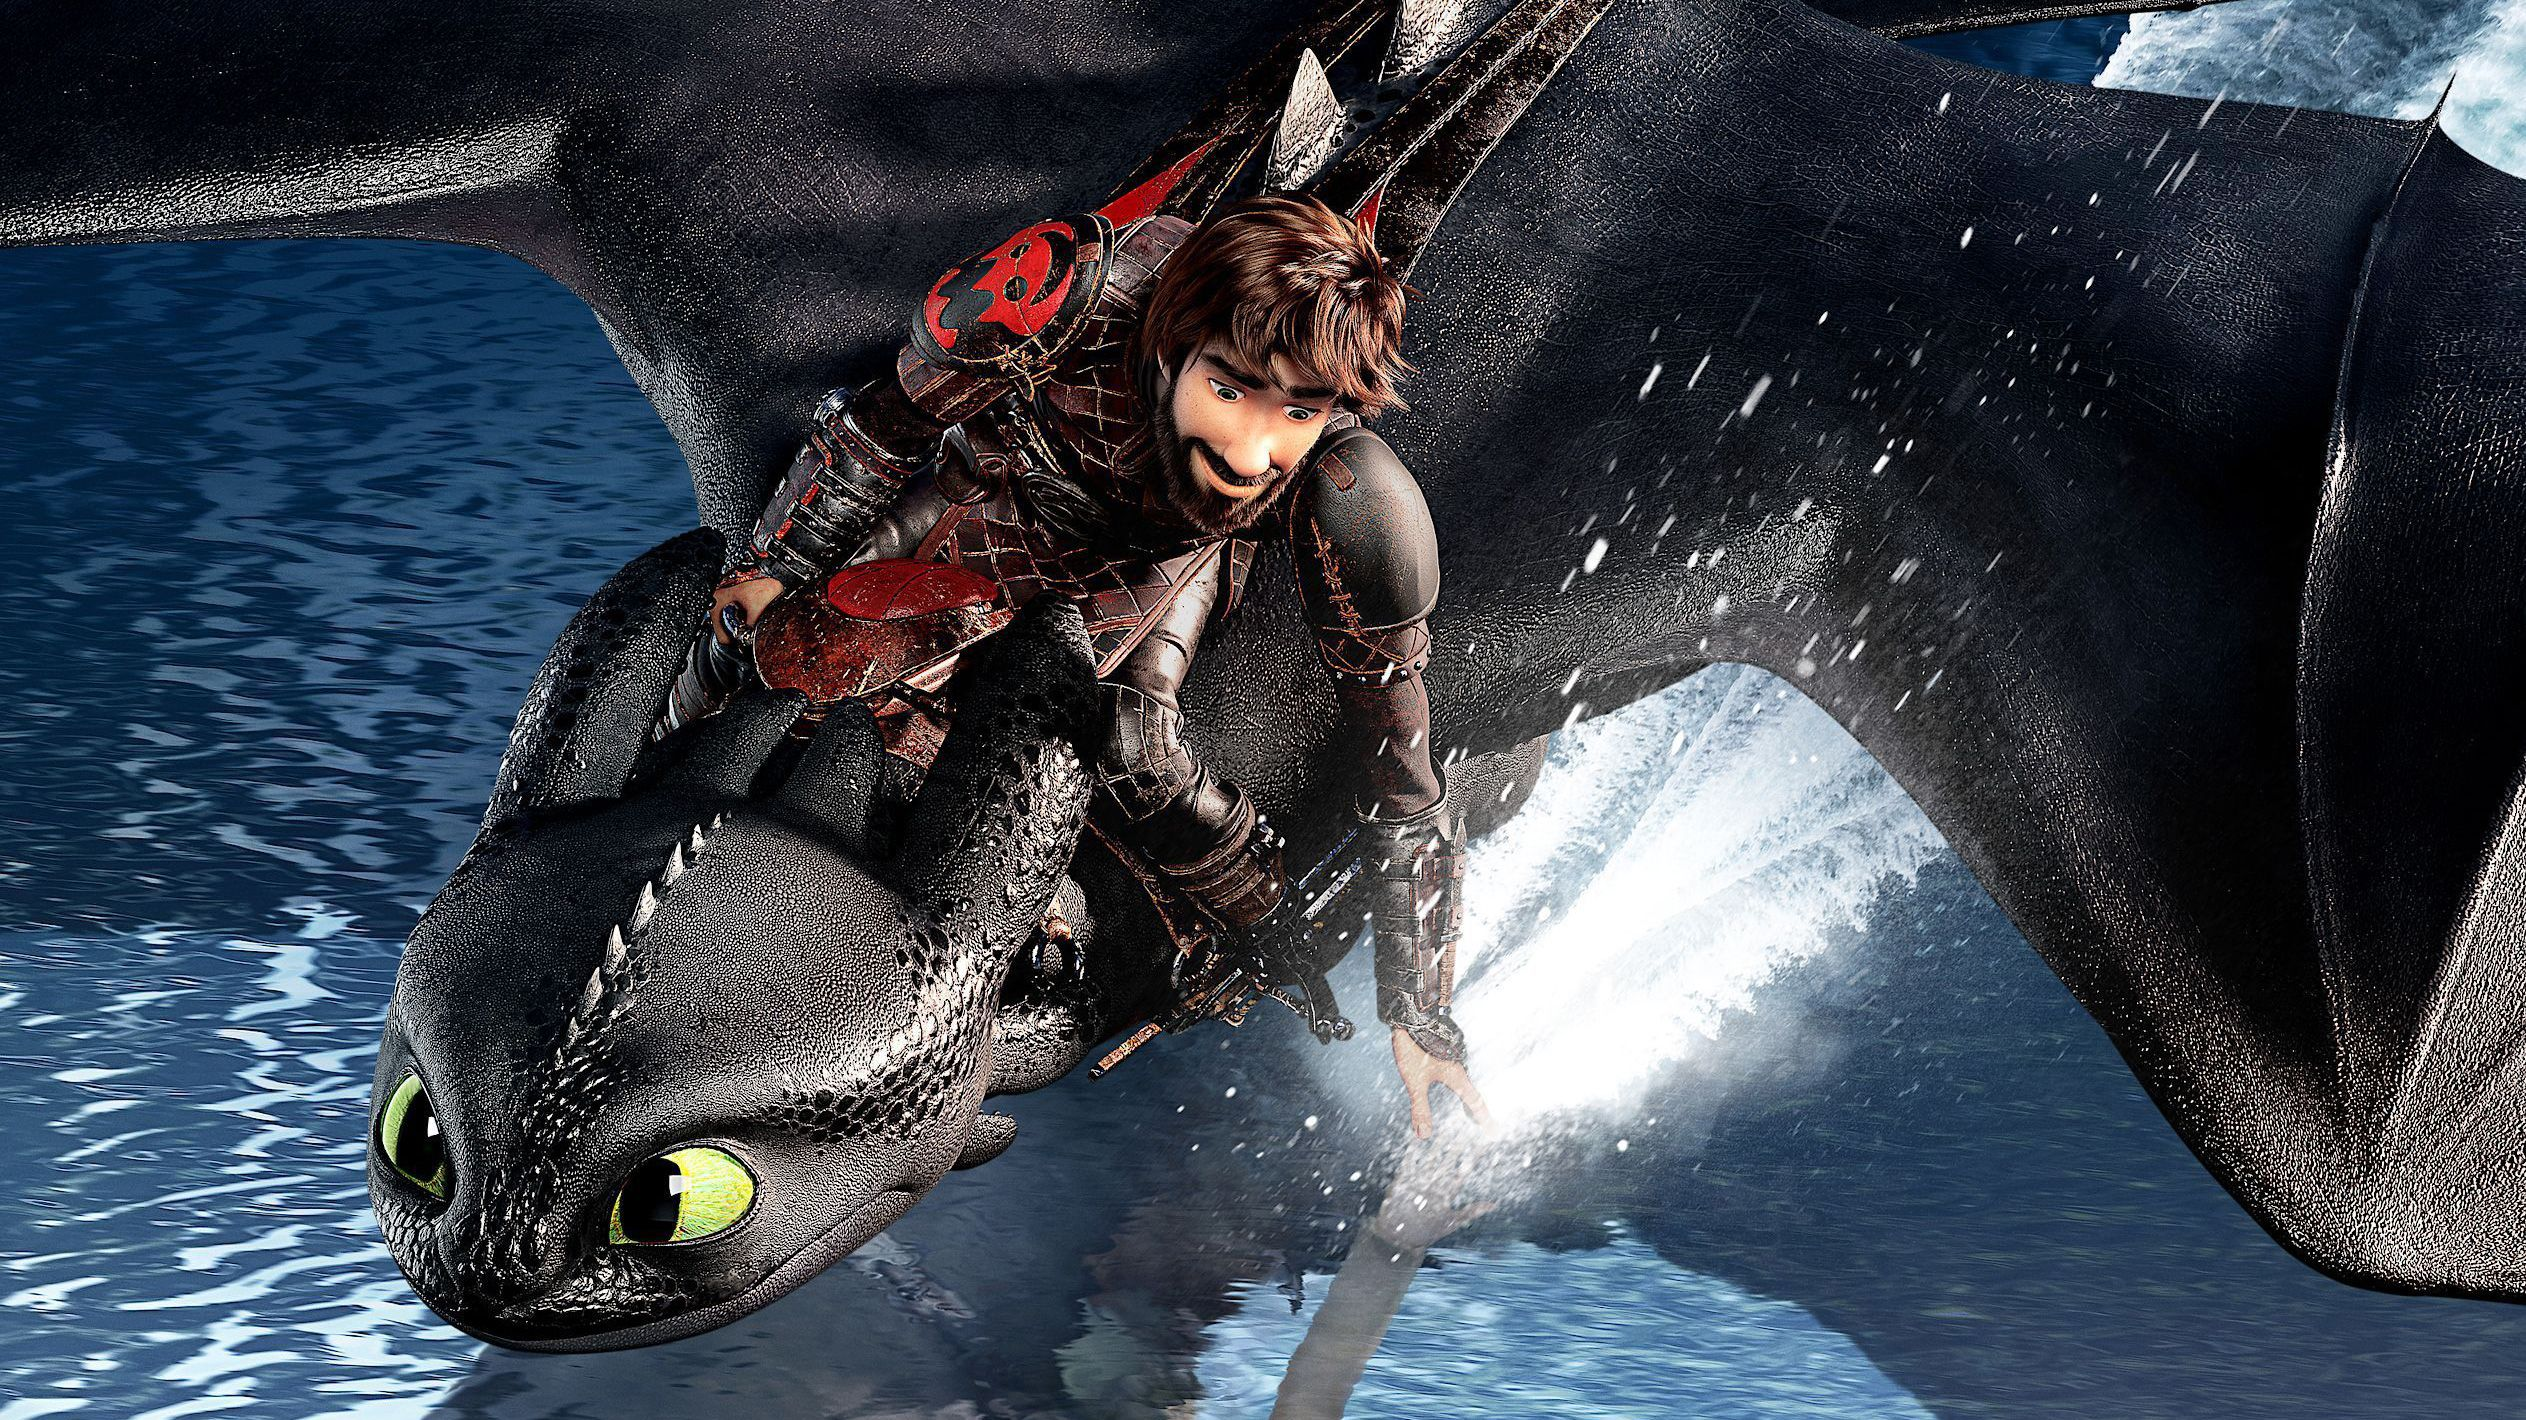 How To Train Your Dragon The Hidden World Wallpapers